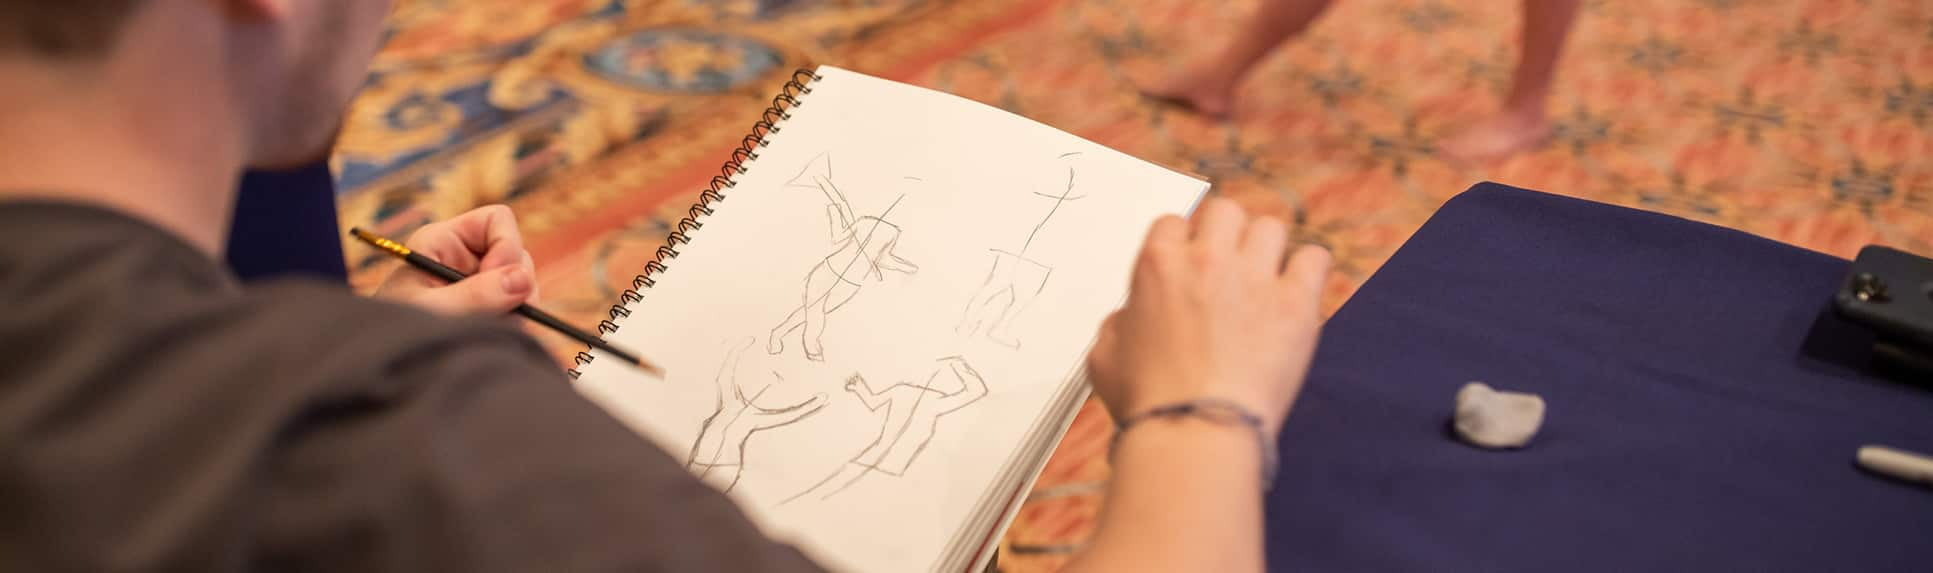 A teenage boy sketches in a pad, capturing the gestures of a female life model